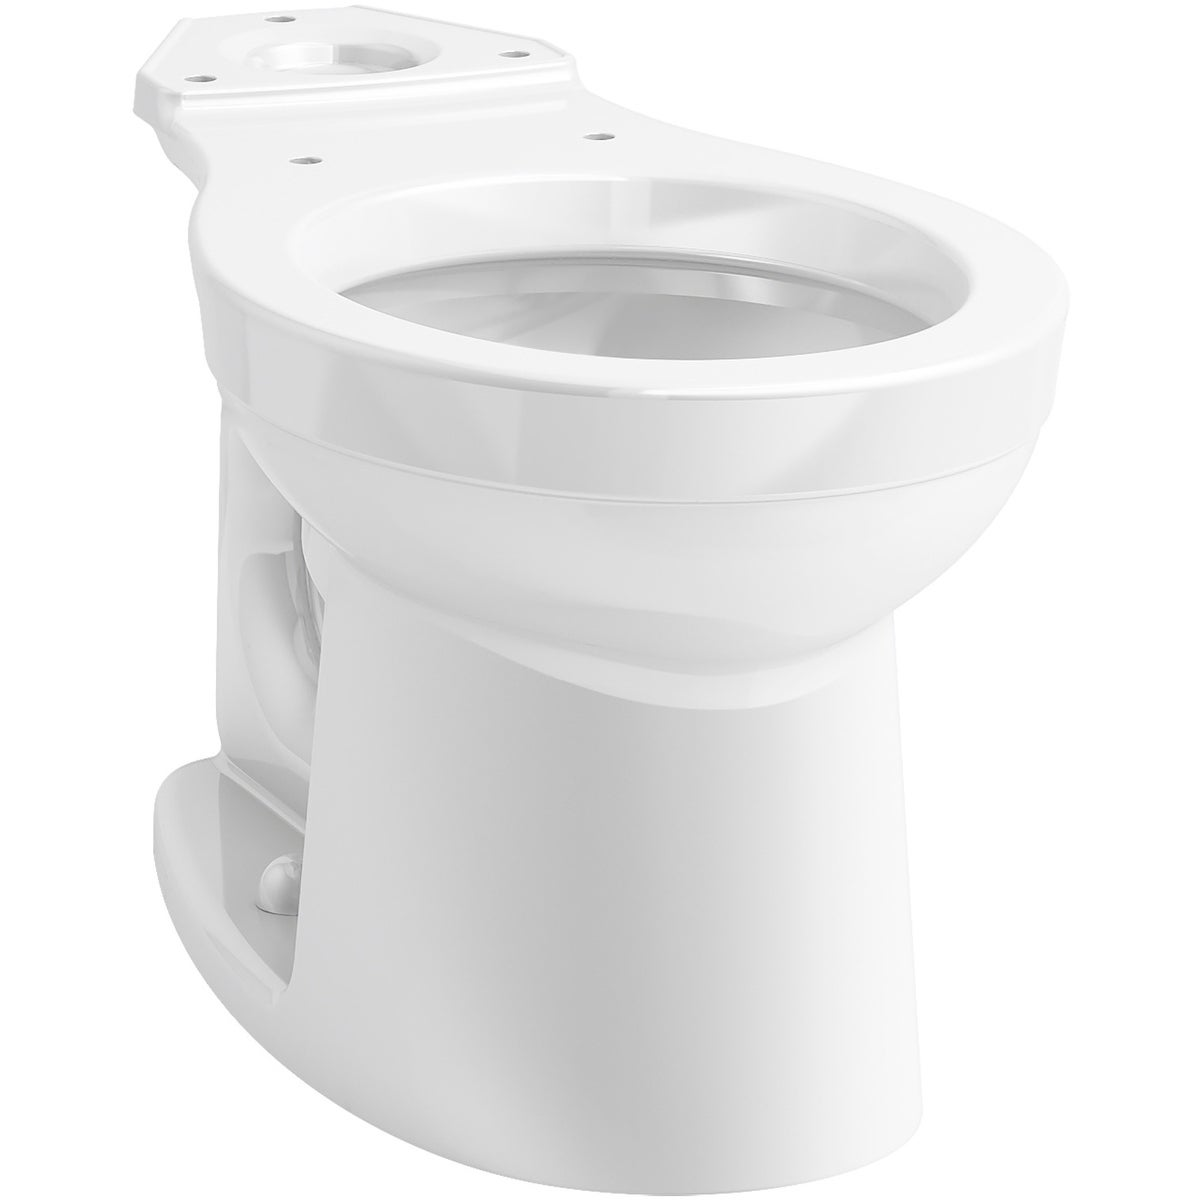 Magnificent Kohler K 25096 Kingston Round Toilet Bowl Only White Andrewgaddart Wooden Chair Designs For Living Room Andrewgaddartcom